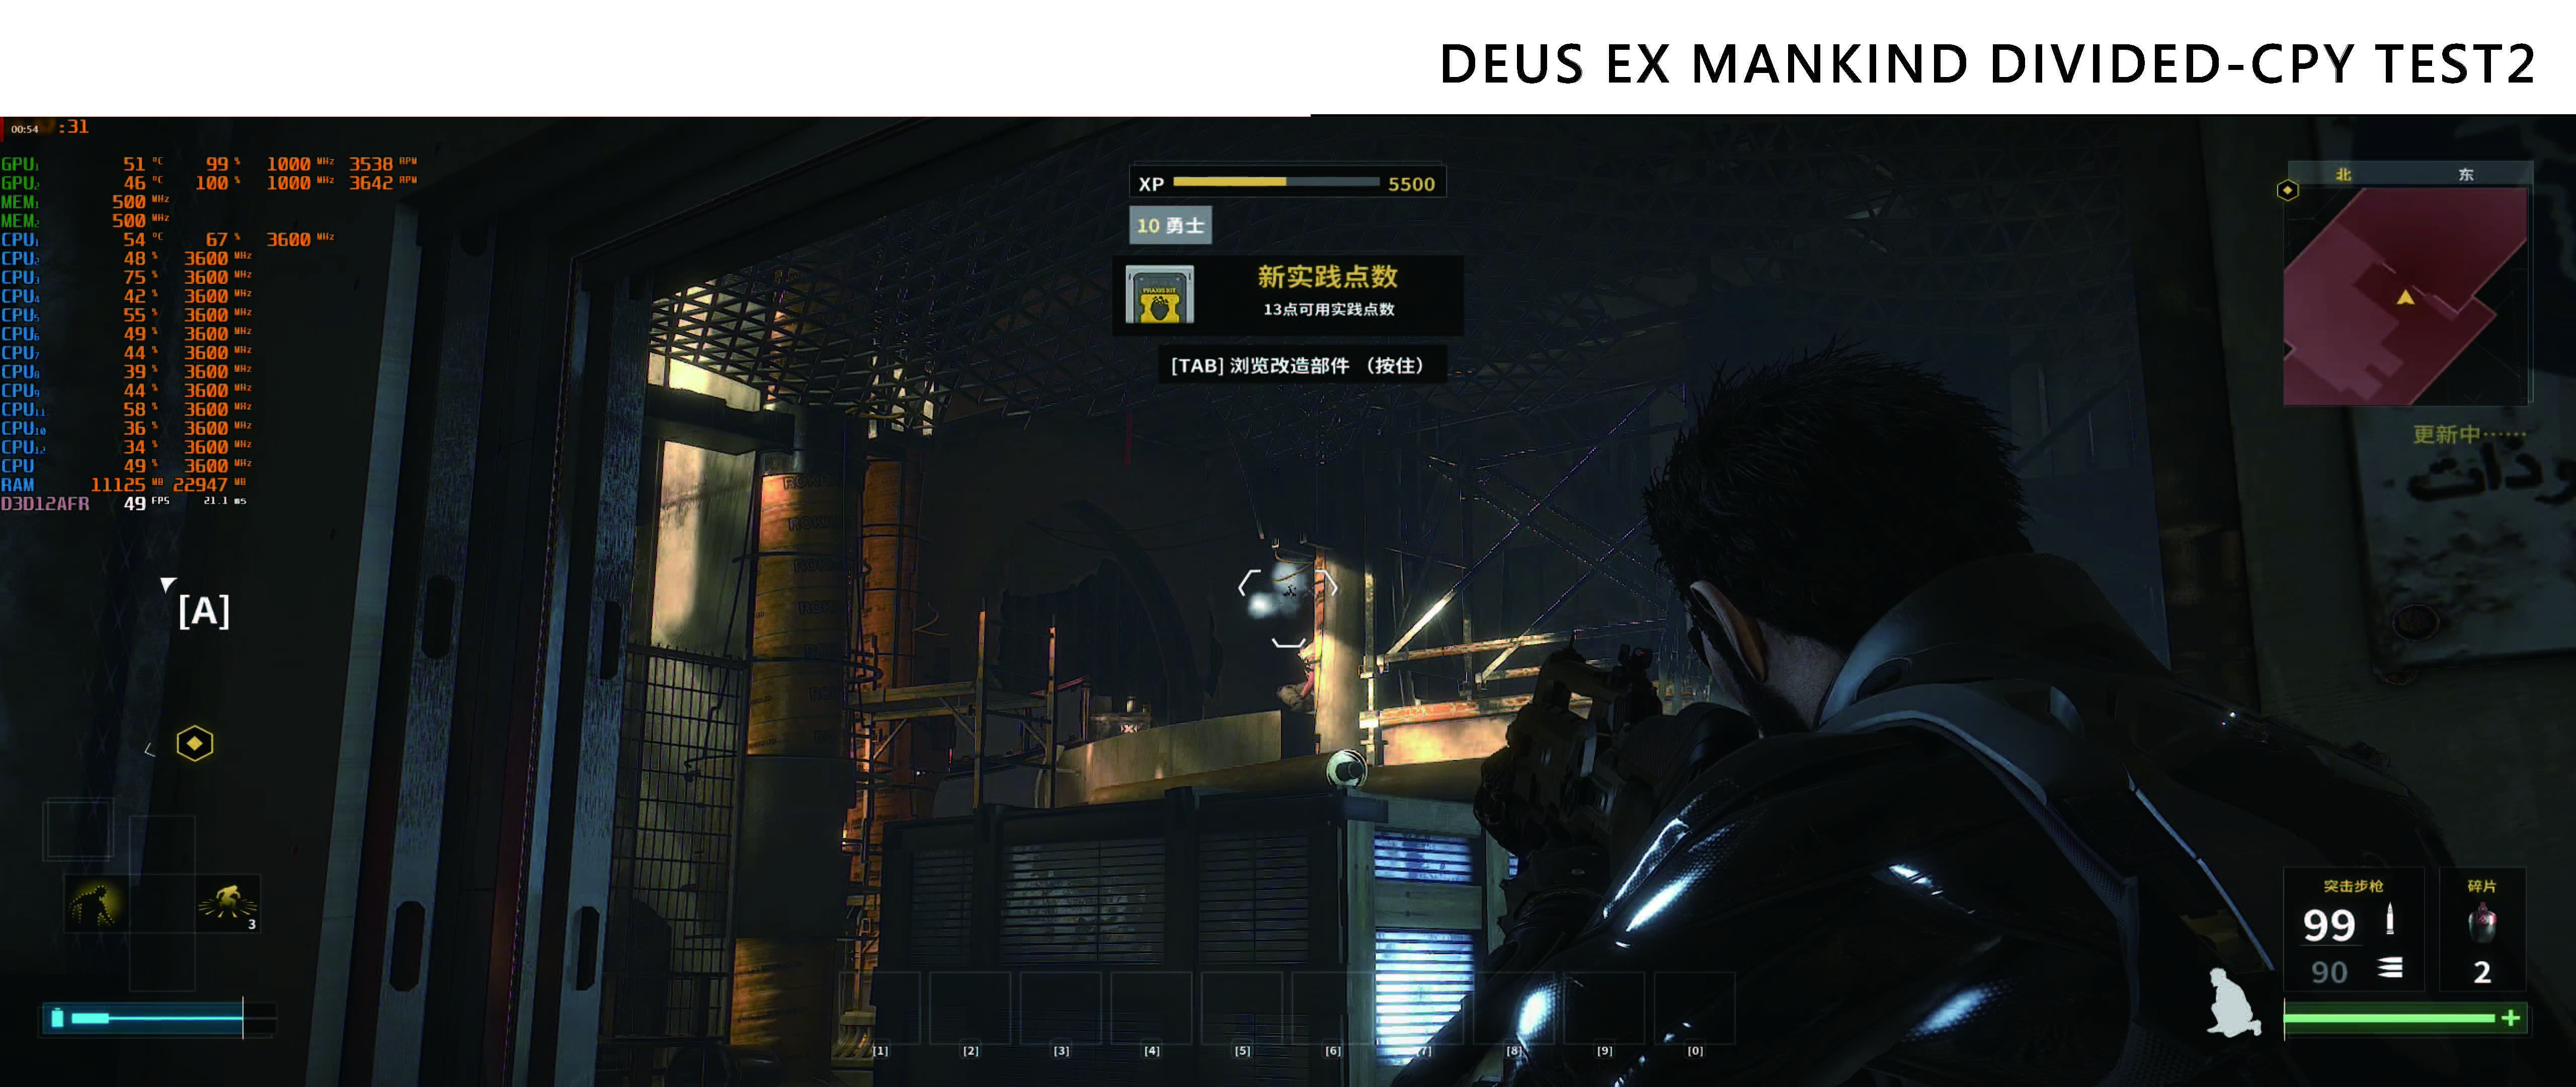 AMD RYZEN 5 1600 & ASUS ROG STRIX X370-F GAMING & AMD RADEON R9 NANOx2 CROSSFIREX TEST - XFastest - DEUS EX MANKIND DIVIDED-CPY TEST2